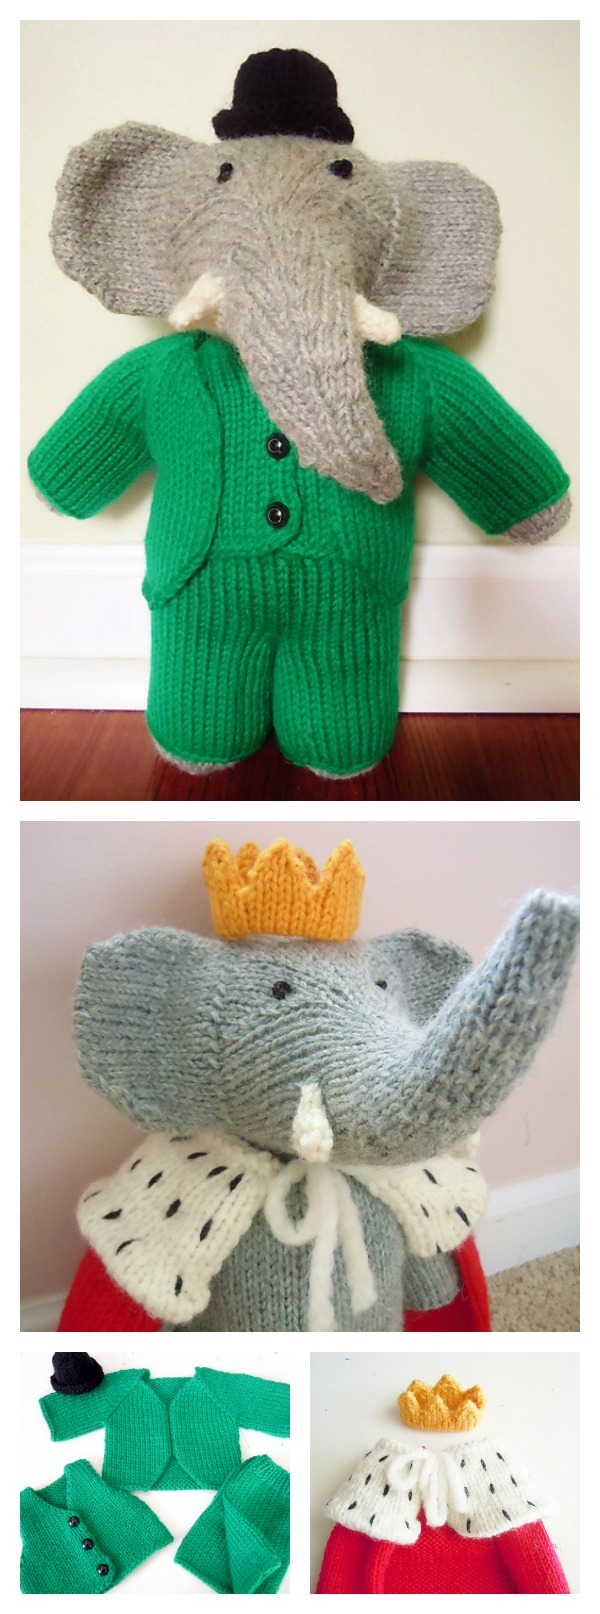 Dog Sweater Patterns Knitting : Knitting Elephant Toy Free Patterns